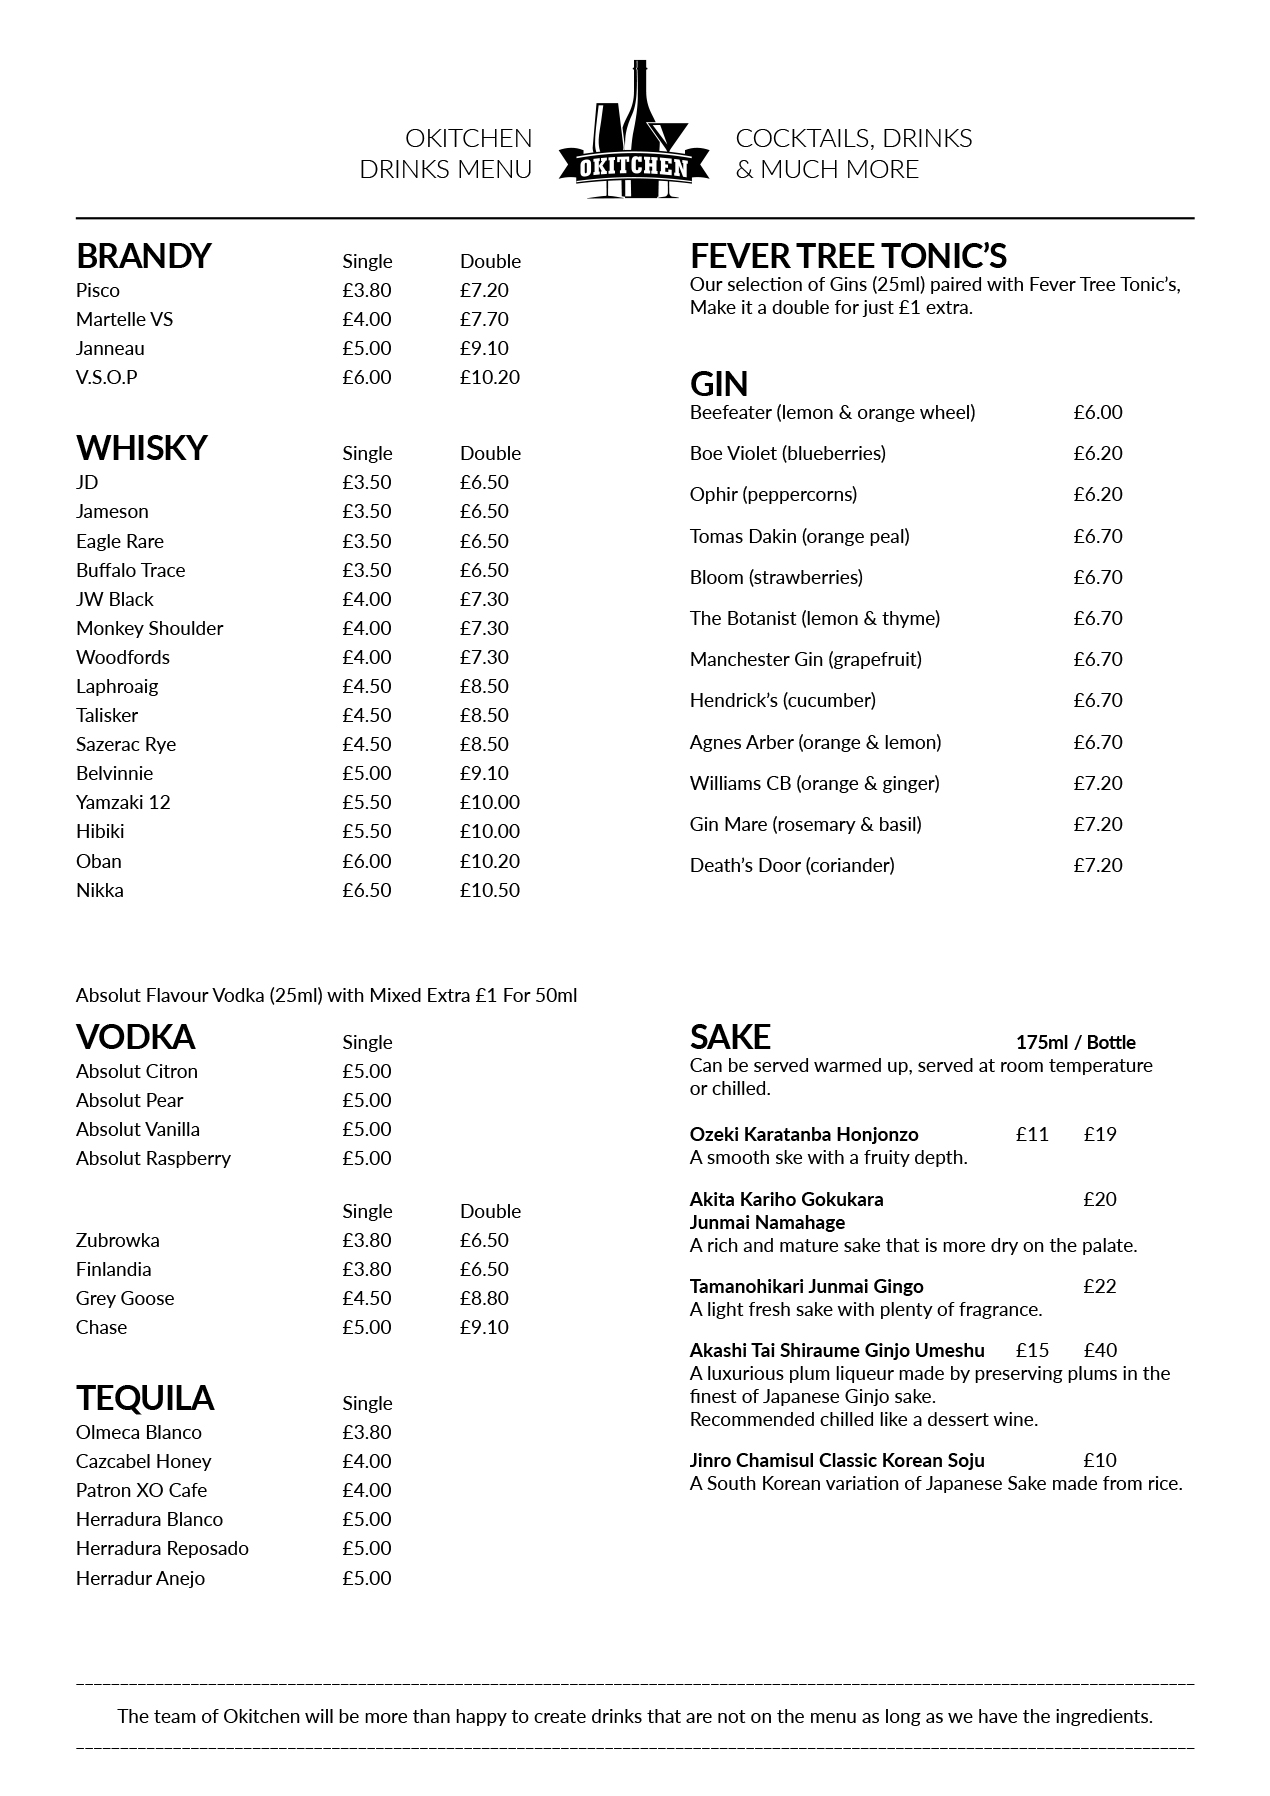 NEW OKITCHEN DRINKS MENU A4 4PAGE 2018-3